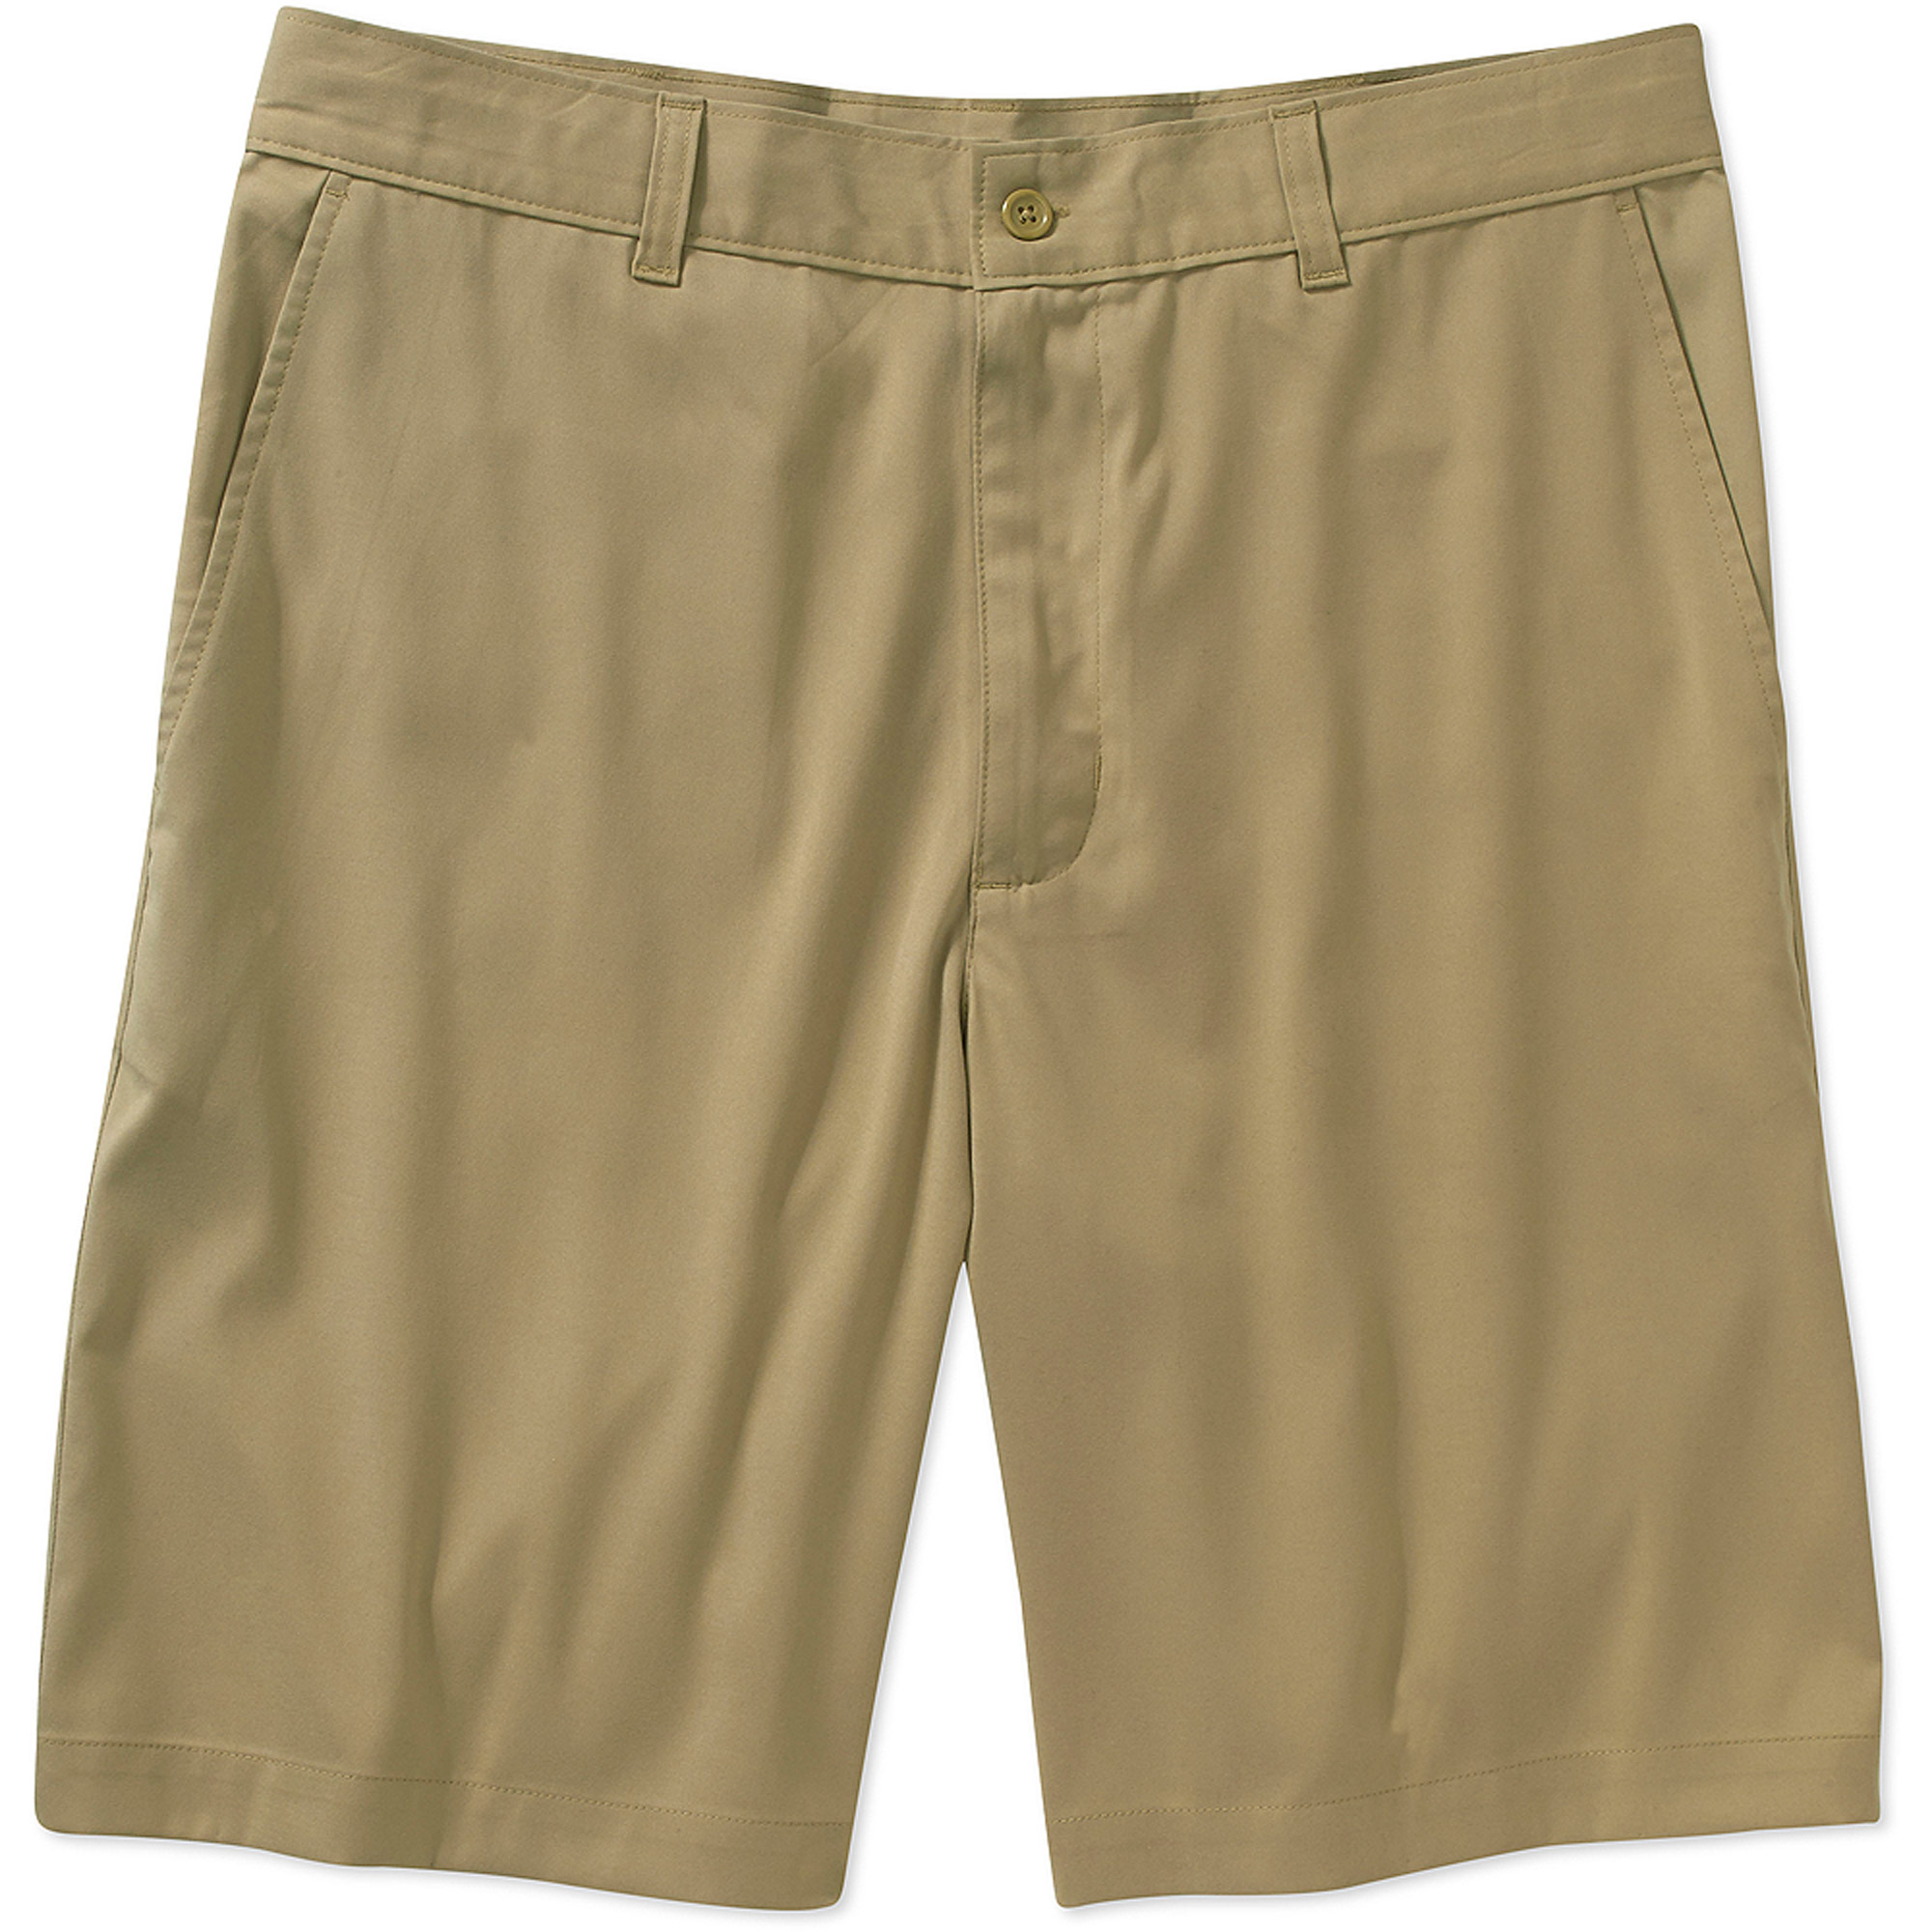 Russell Big Men's Performance Flat Front Golf and Performance Short